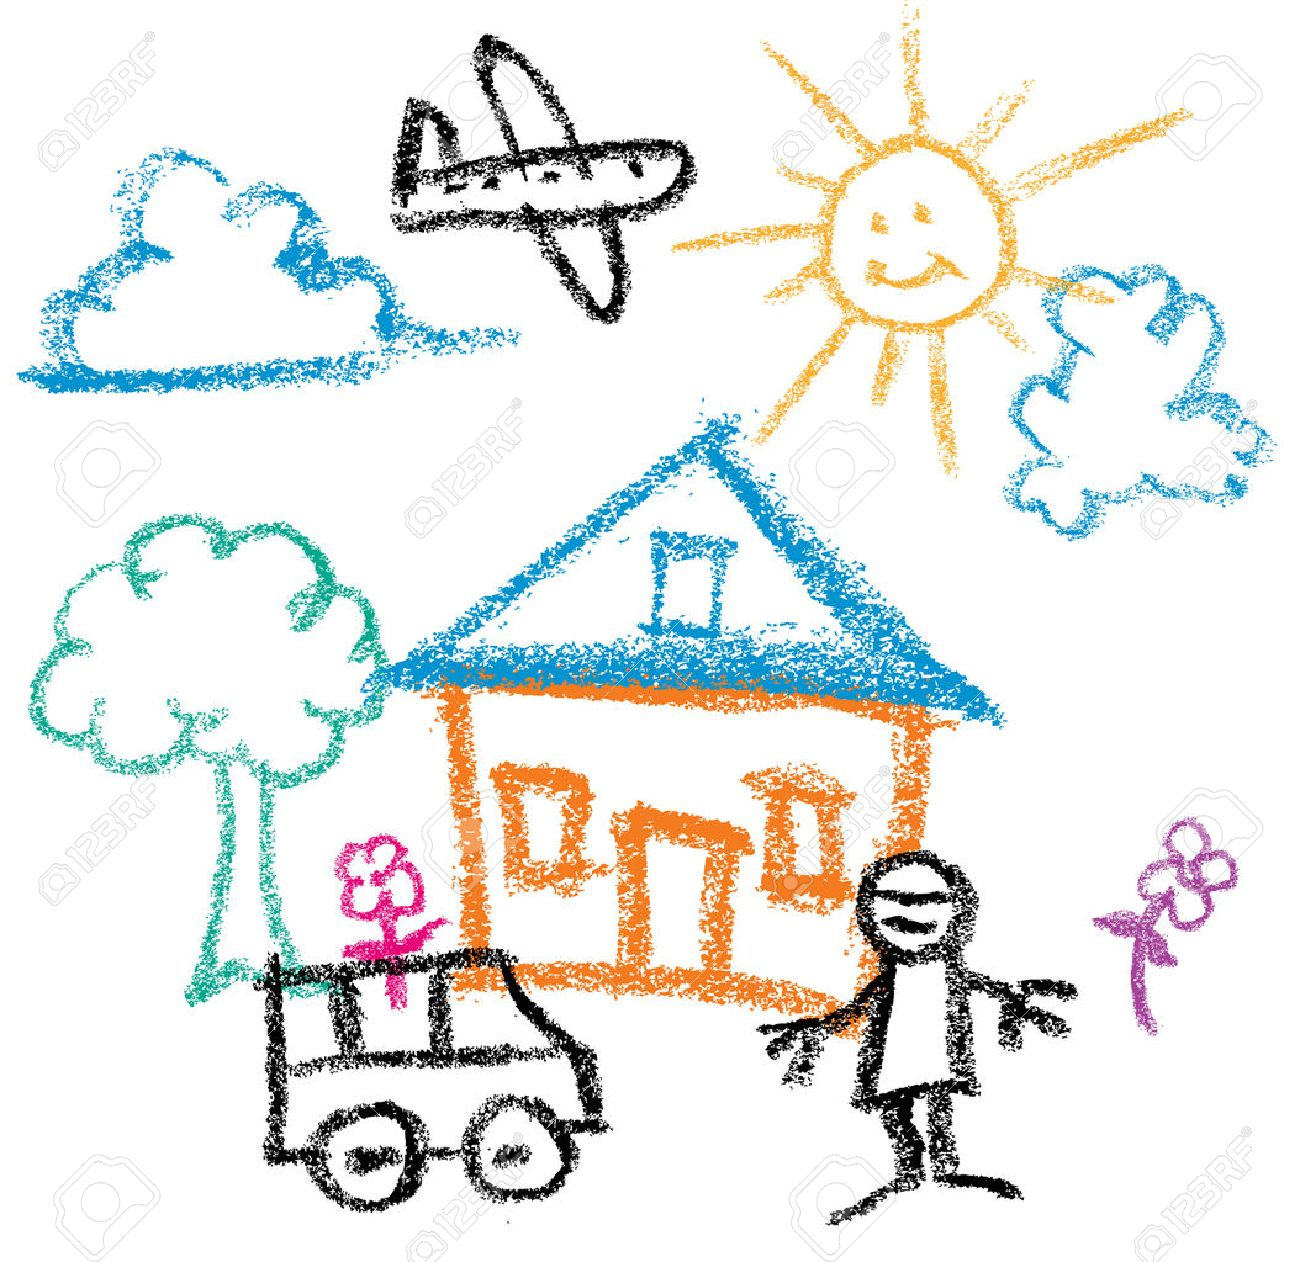 Kids Crayon Drawing Of Sunny Day House And Man And Car Royalty Free Cliparts Vectors And Stock Illustration Image 30146145